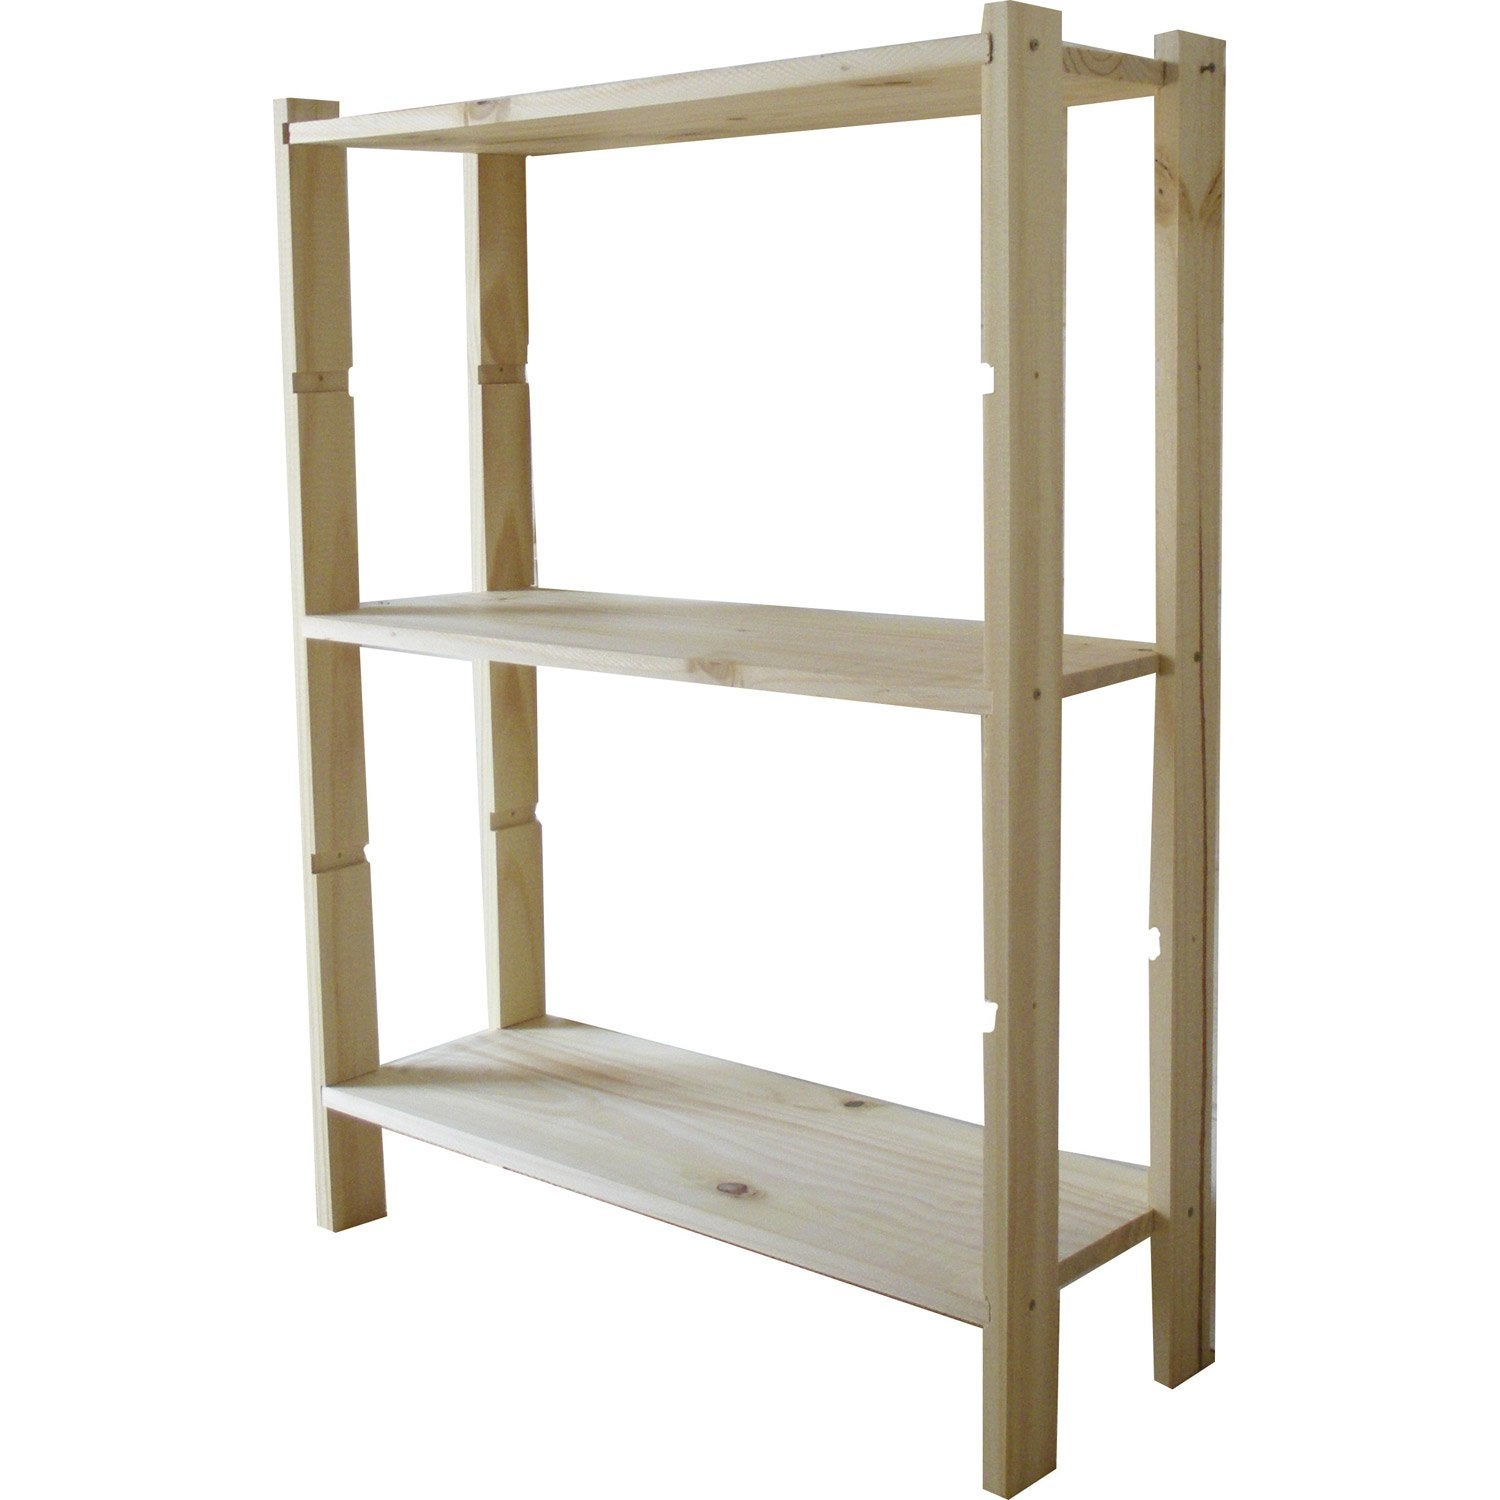 Etag re pin 3 tablettes x x cm leroy for Etagere bois brut